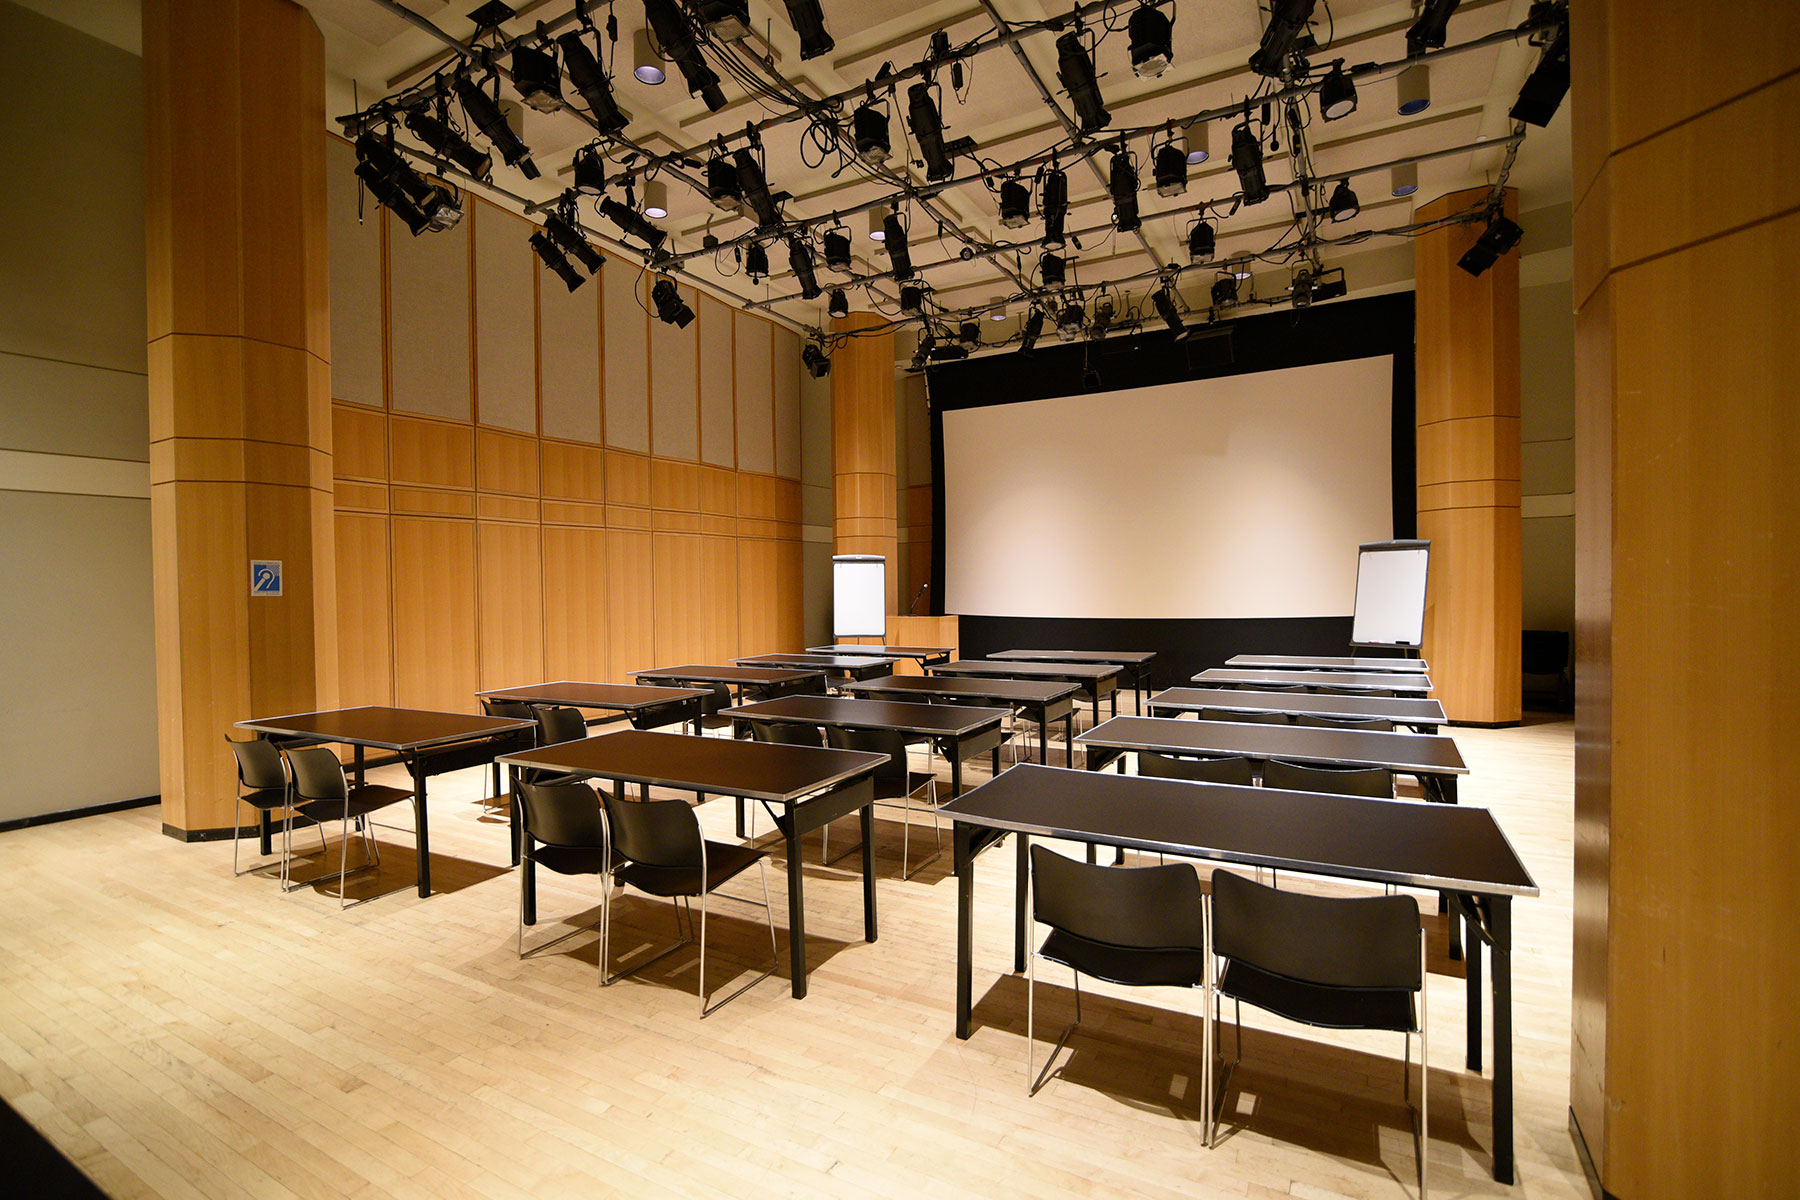 Segal Theatre - Black Box Theater Rental in NYC. Black box theater space set up for class or training.